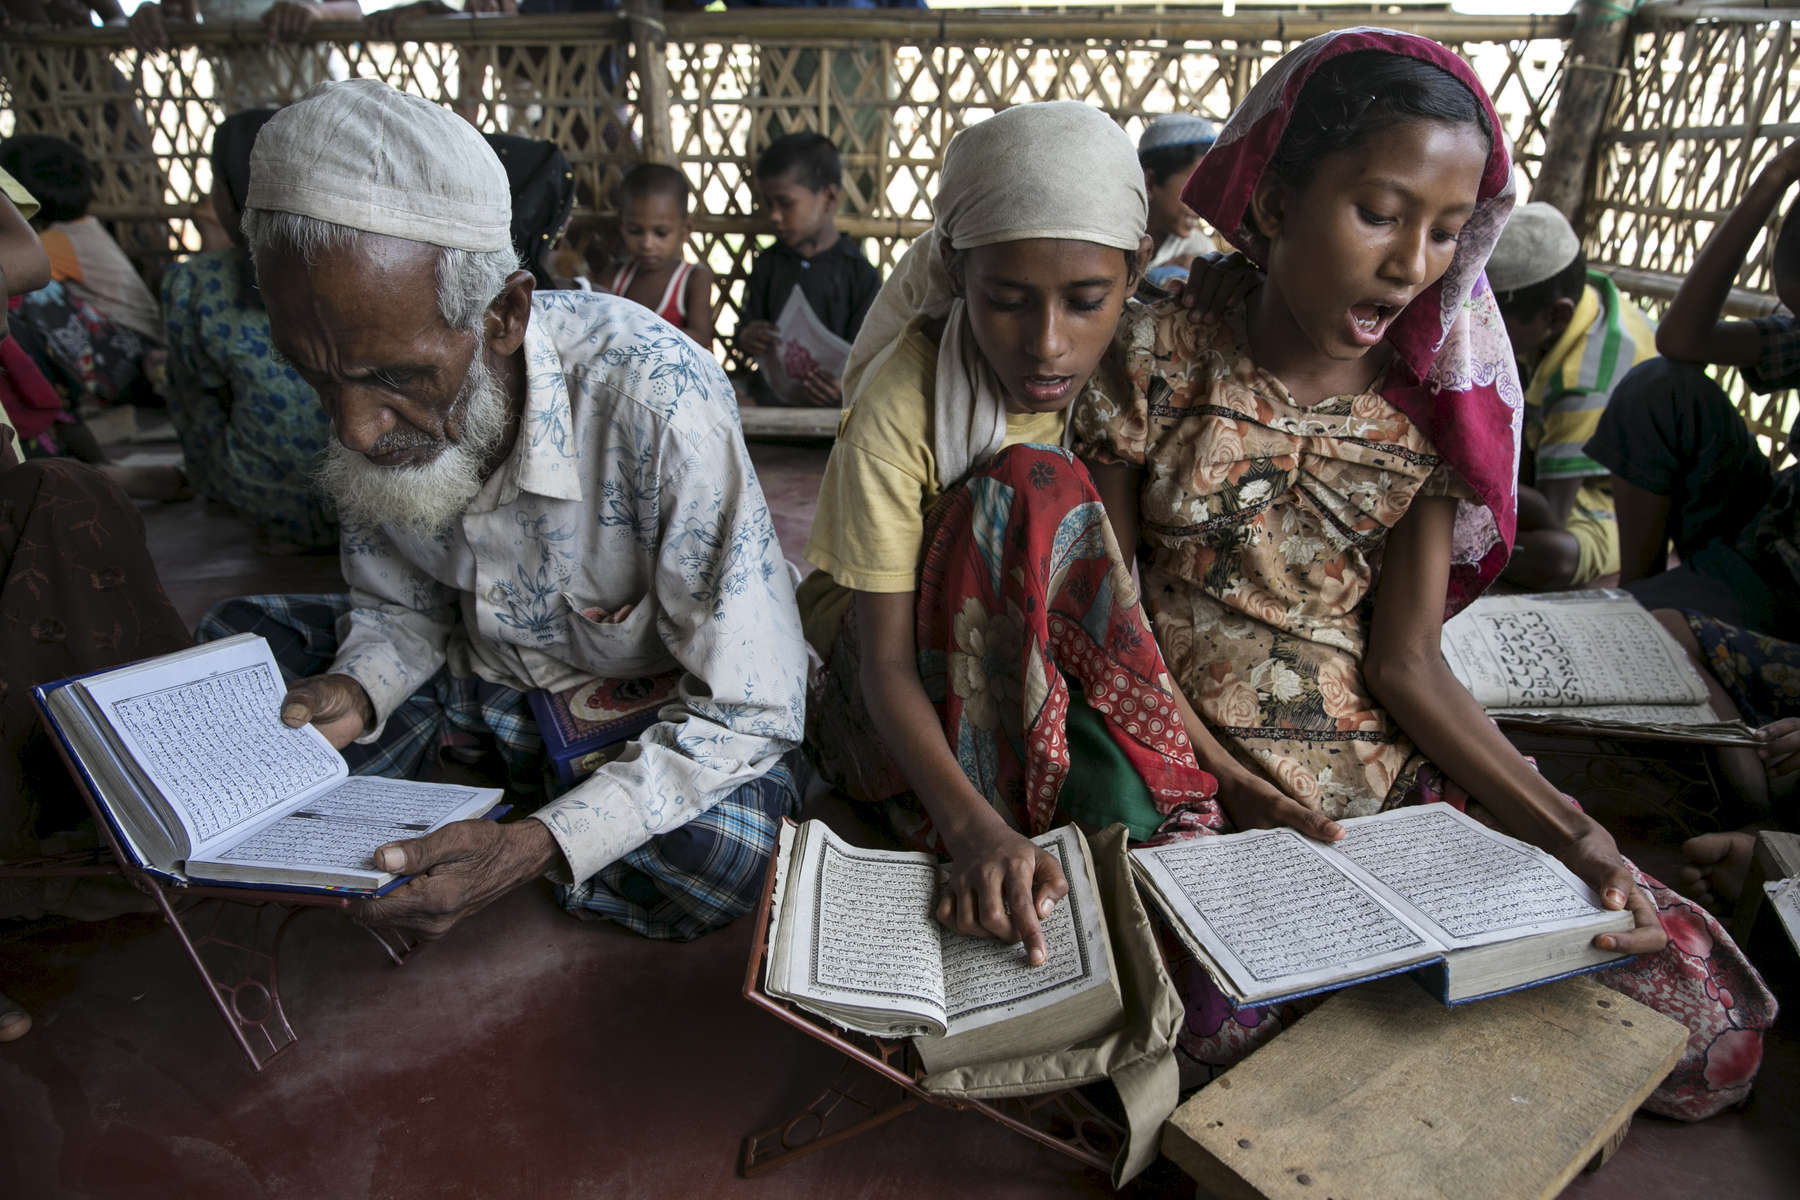 Rohingya girls study at a religious school teaching daily classes in Islamic studies at the Say Tha Mar Gyi IDP camp.( Photo by Paula Bronstein/ For The Washington Post )